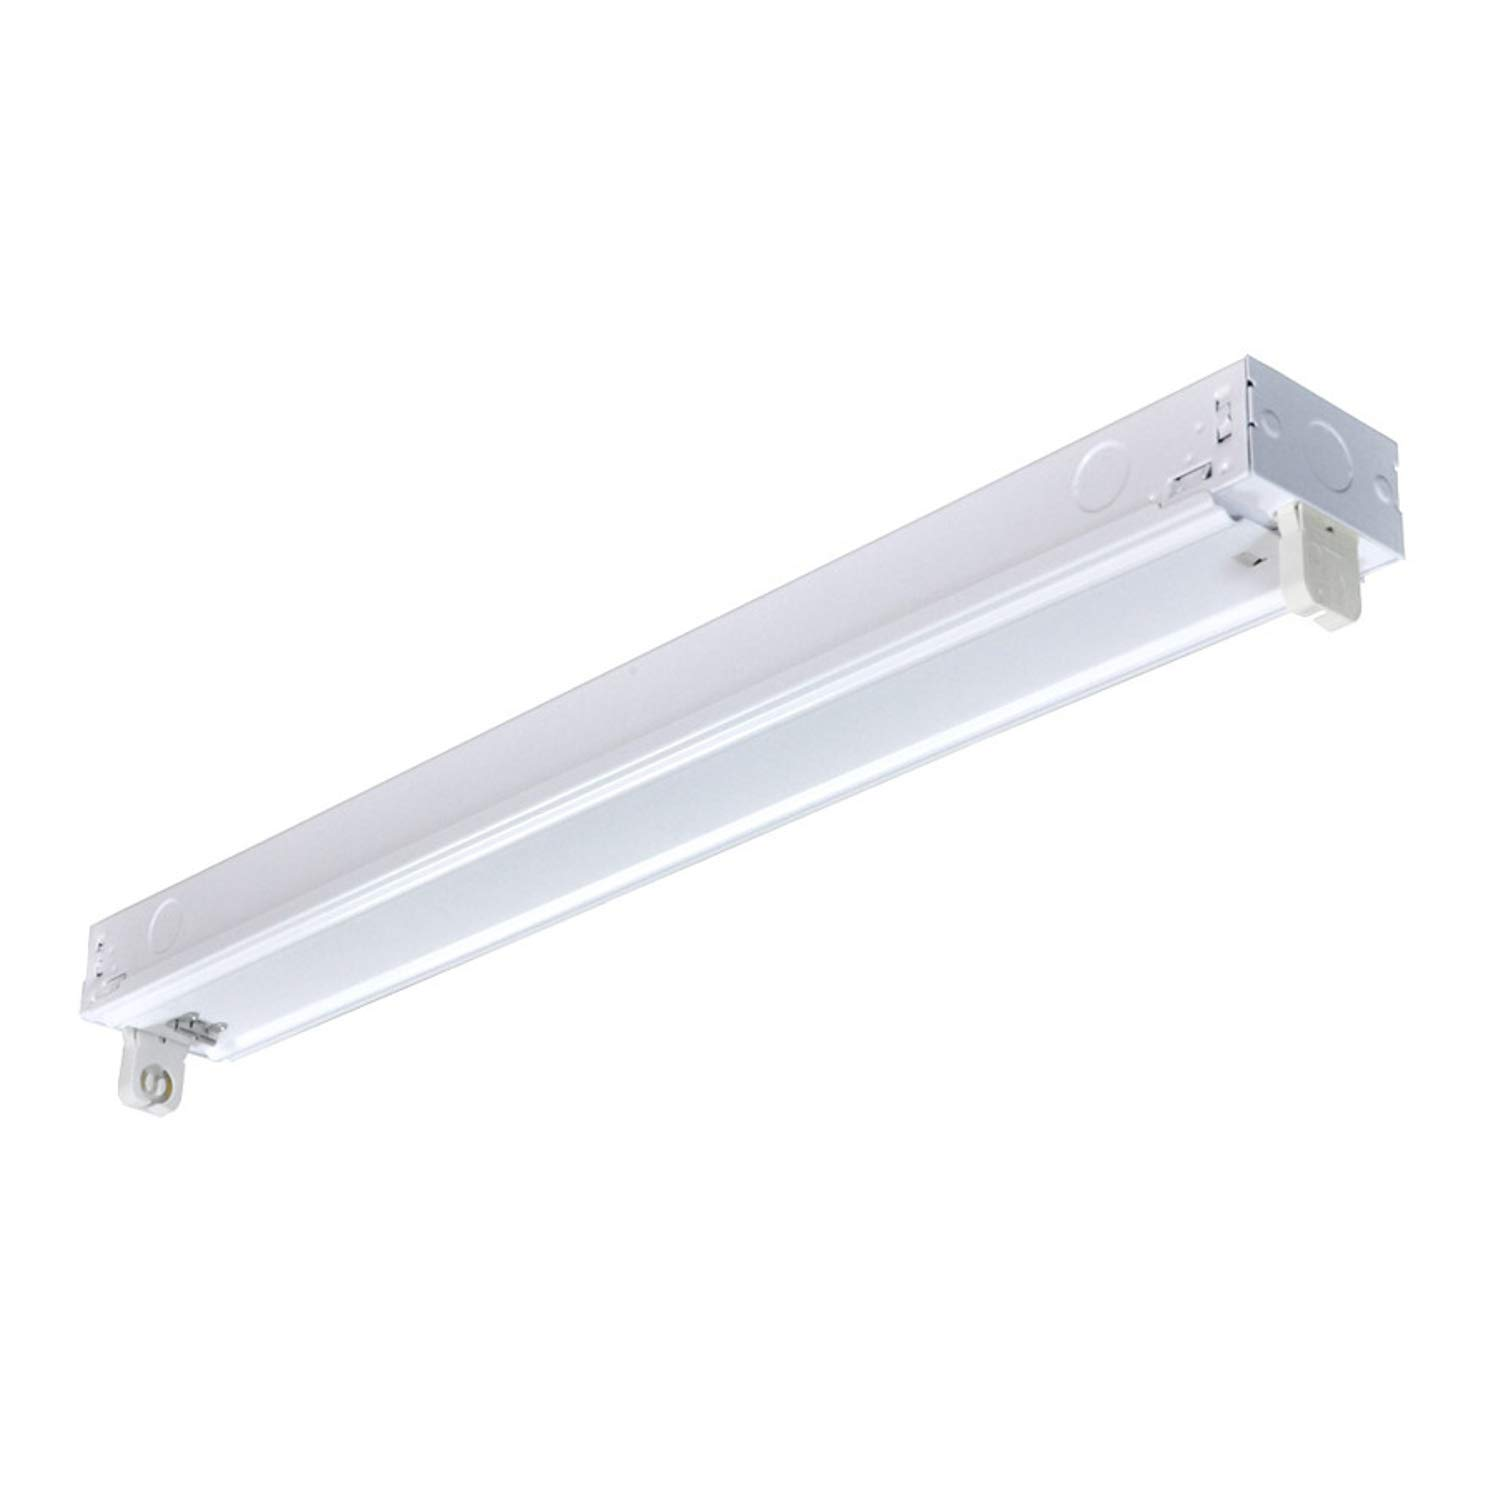 UTiLiTECH 2ft 1 Light Strip Light White Steel Housing Instant On Electronic Ballast Quiet Operation with 0 Degree F Start up